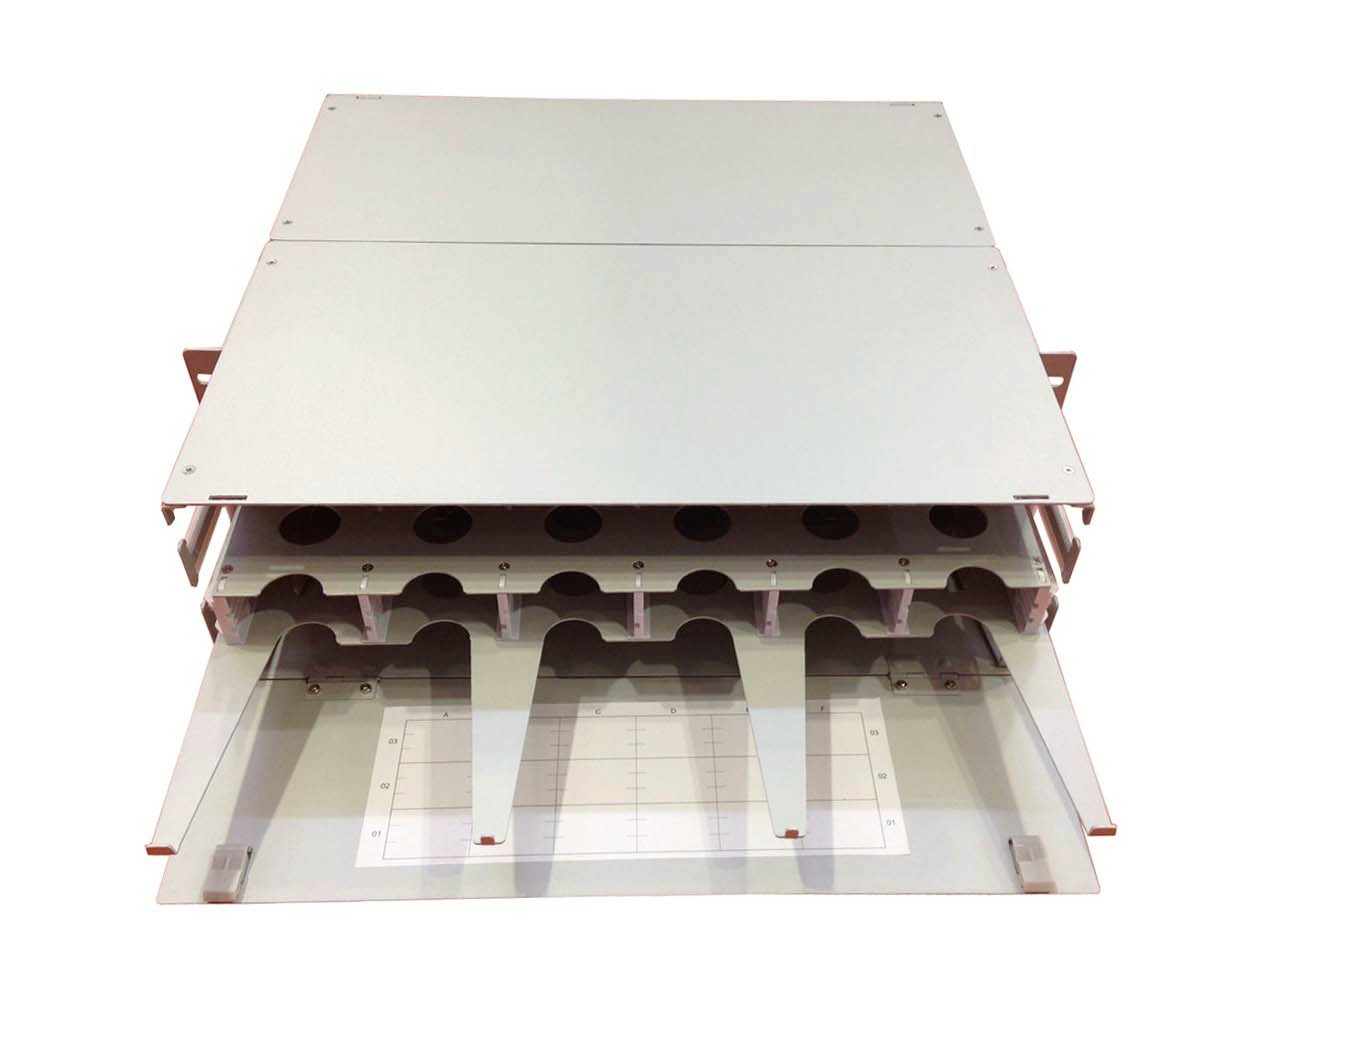 432 core mpo patch panel